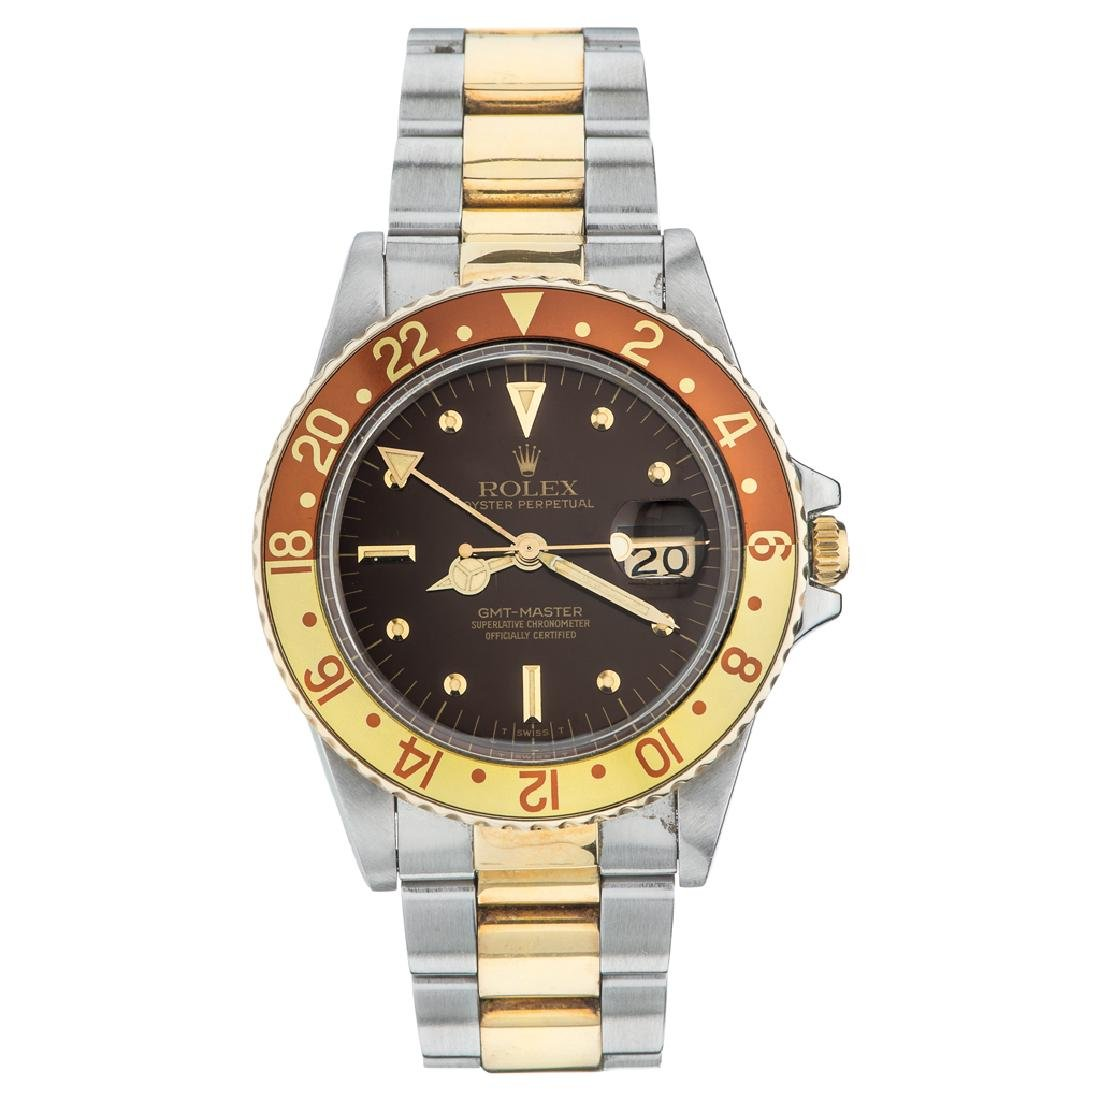 ROLEX OYSTER PERPETUAL GMT MASTER WRISTWATCH REF.